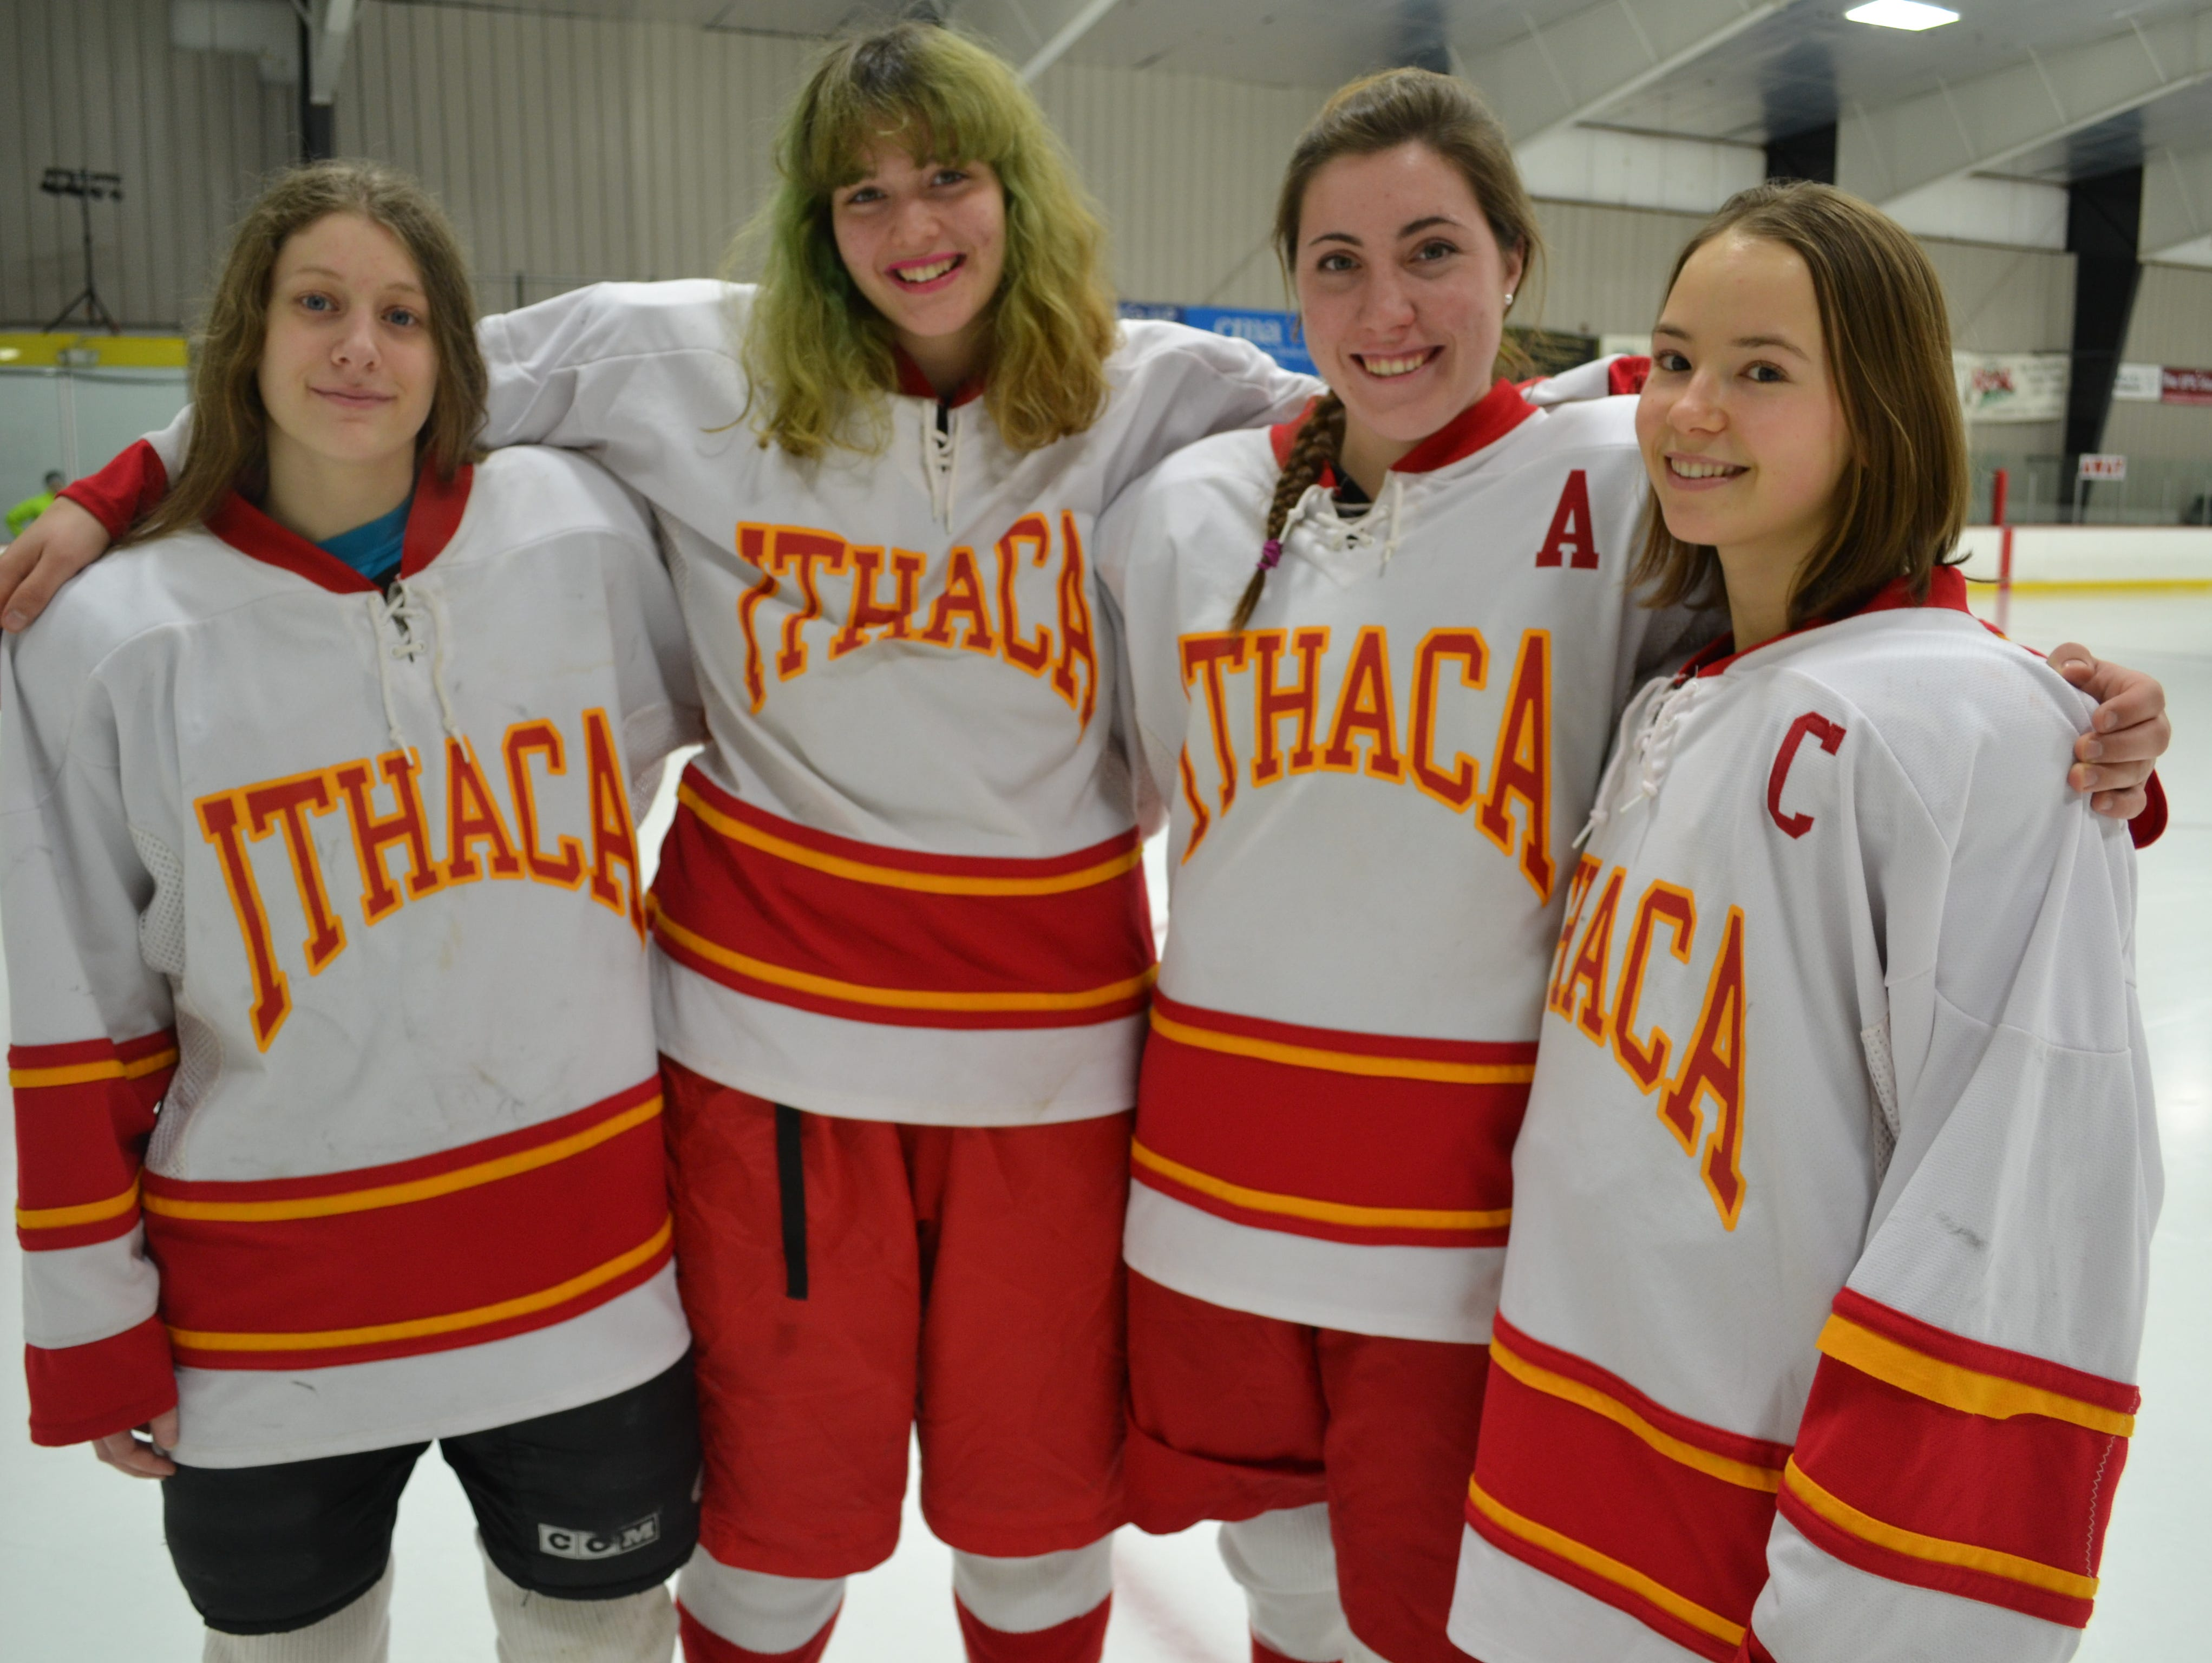 The departure of last season's Ithaca High girls hockey seniors, half the team's starting lineup from last year, will require younger players to step up. From left to right, Jacy Hollander, Marlena Doerr, Clara Karastury and former captain Zsofi Szegletes.